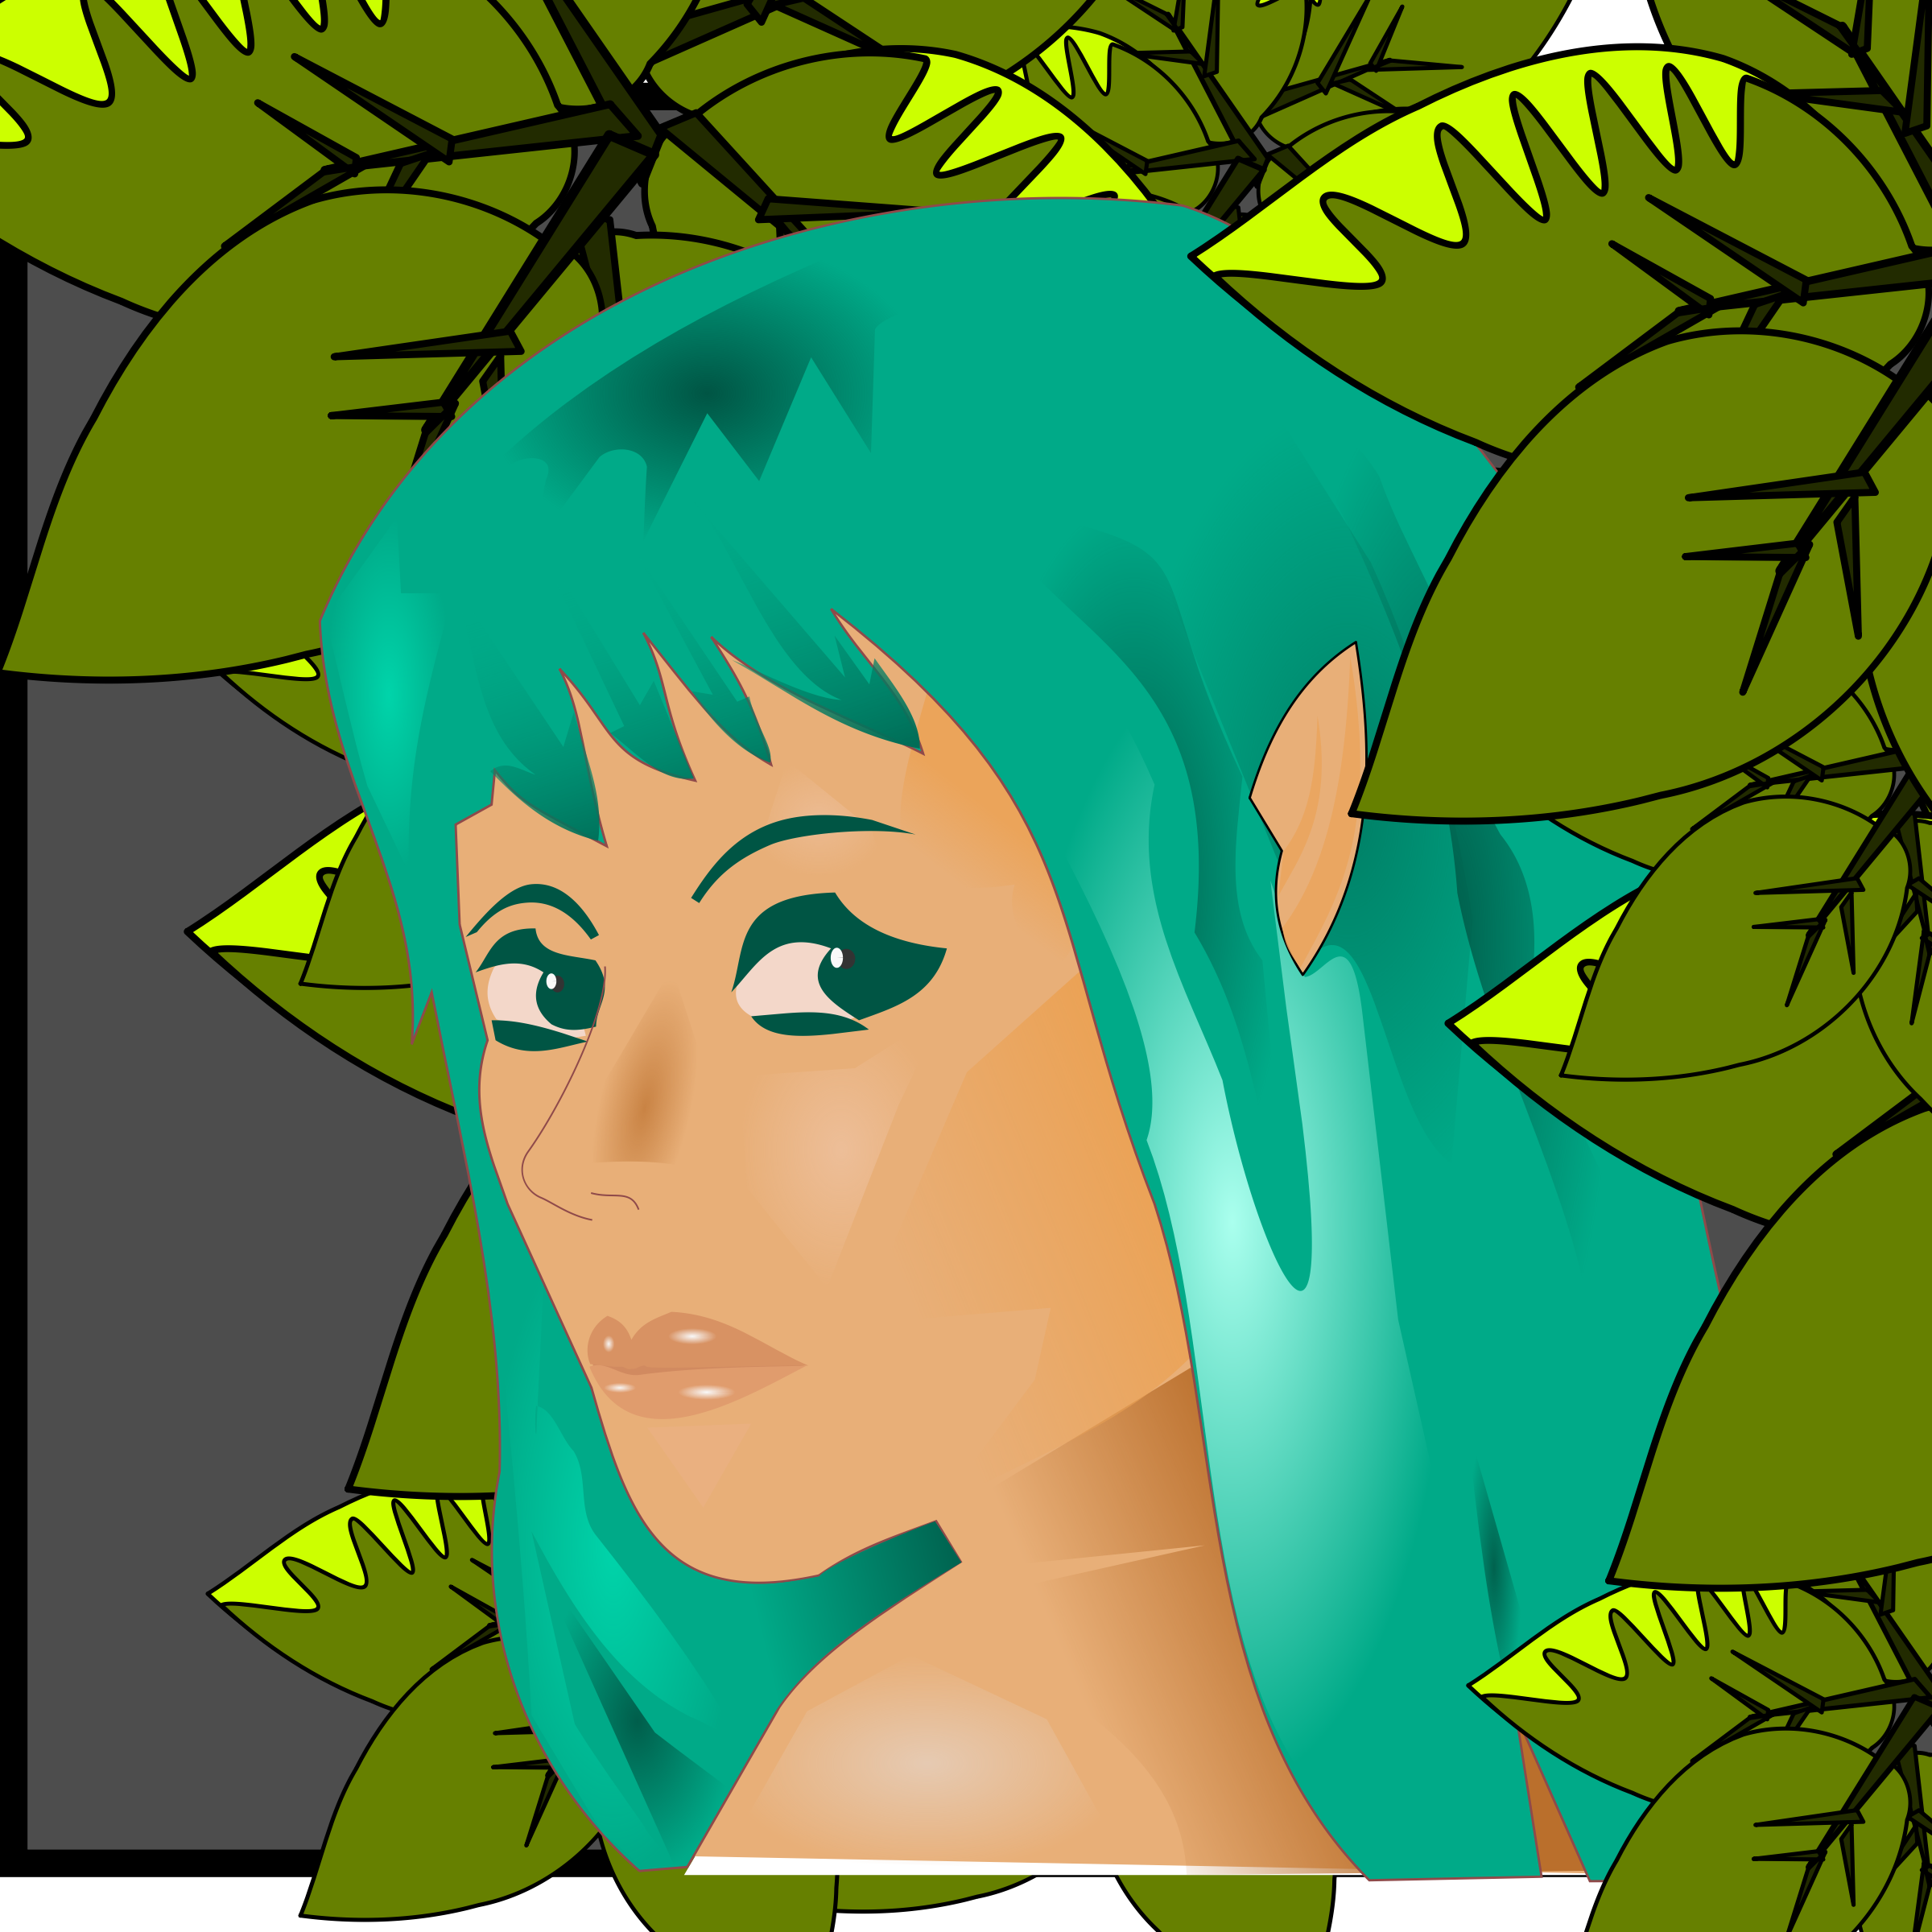 elf woman in leaves by Peileppe